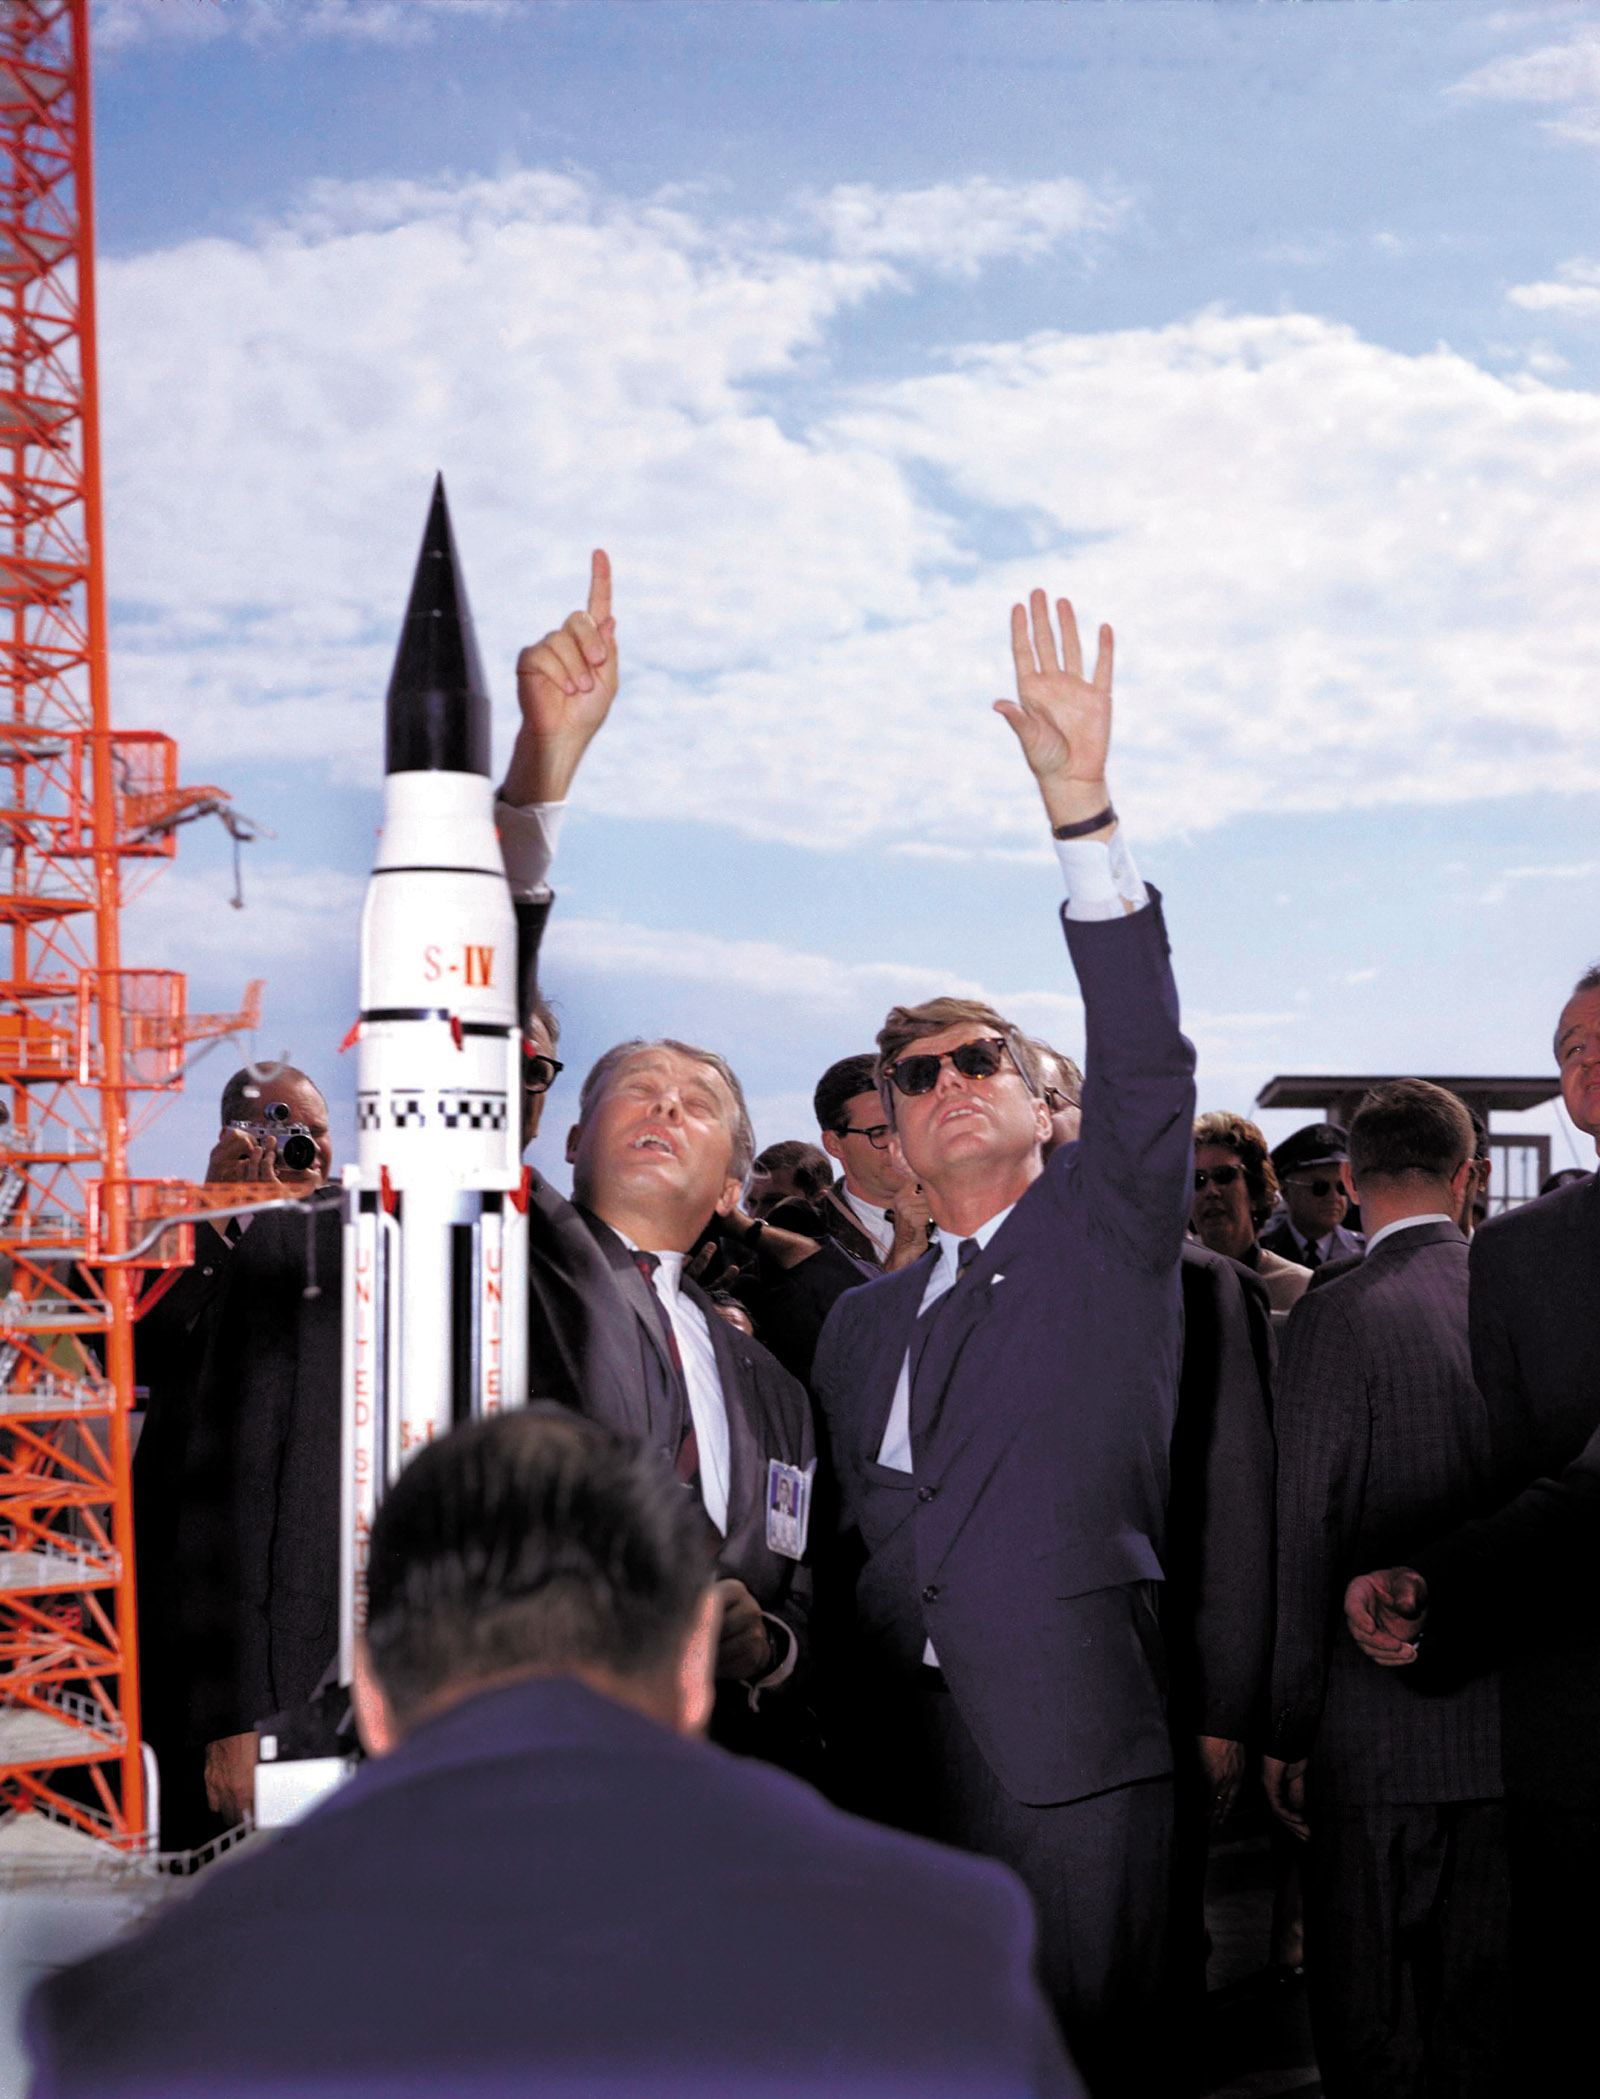 Wernher von Braun and J.F.K. with a model of the Saturn booster rocket, Cape Canaveral, November 16, 1963